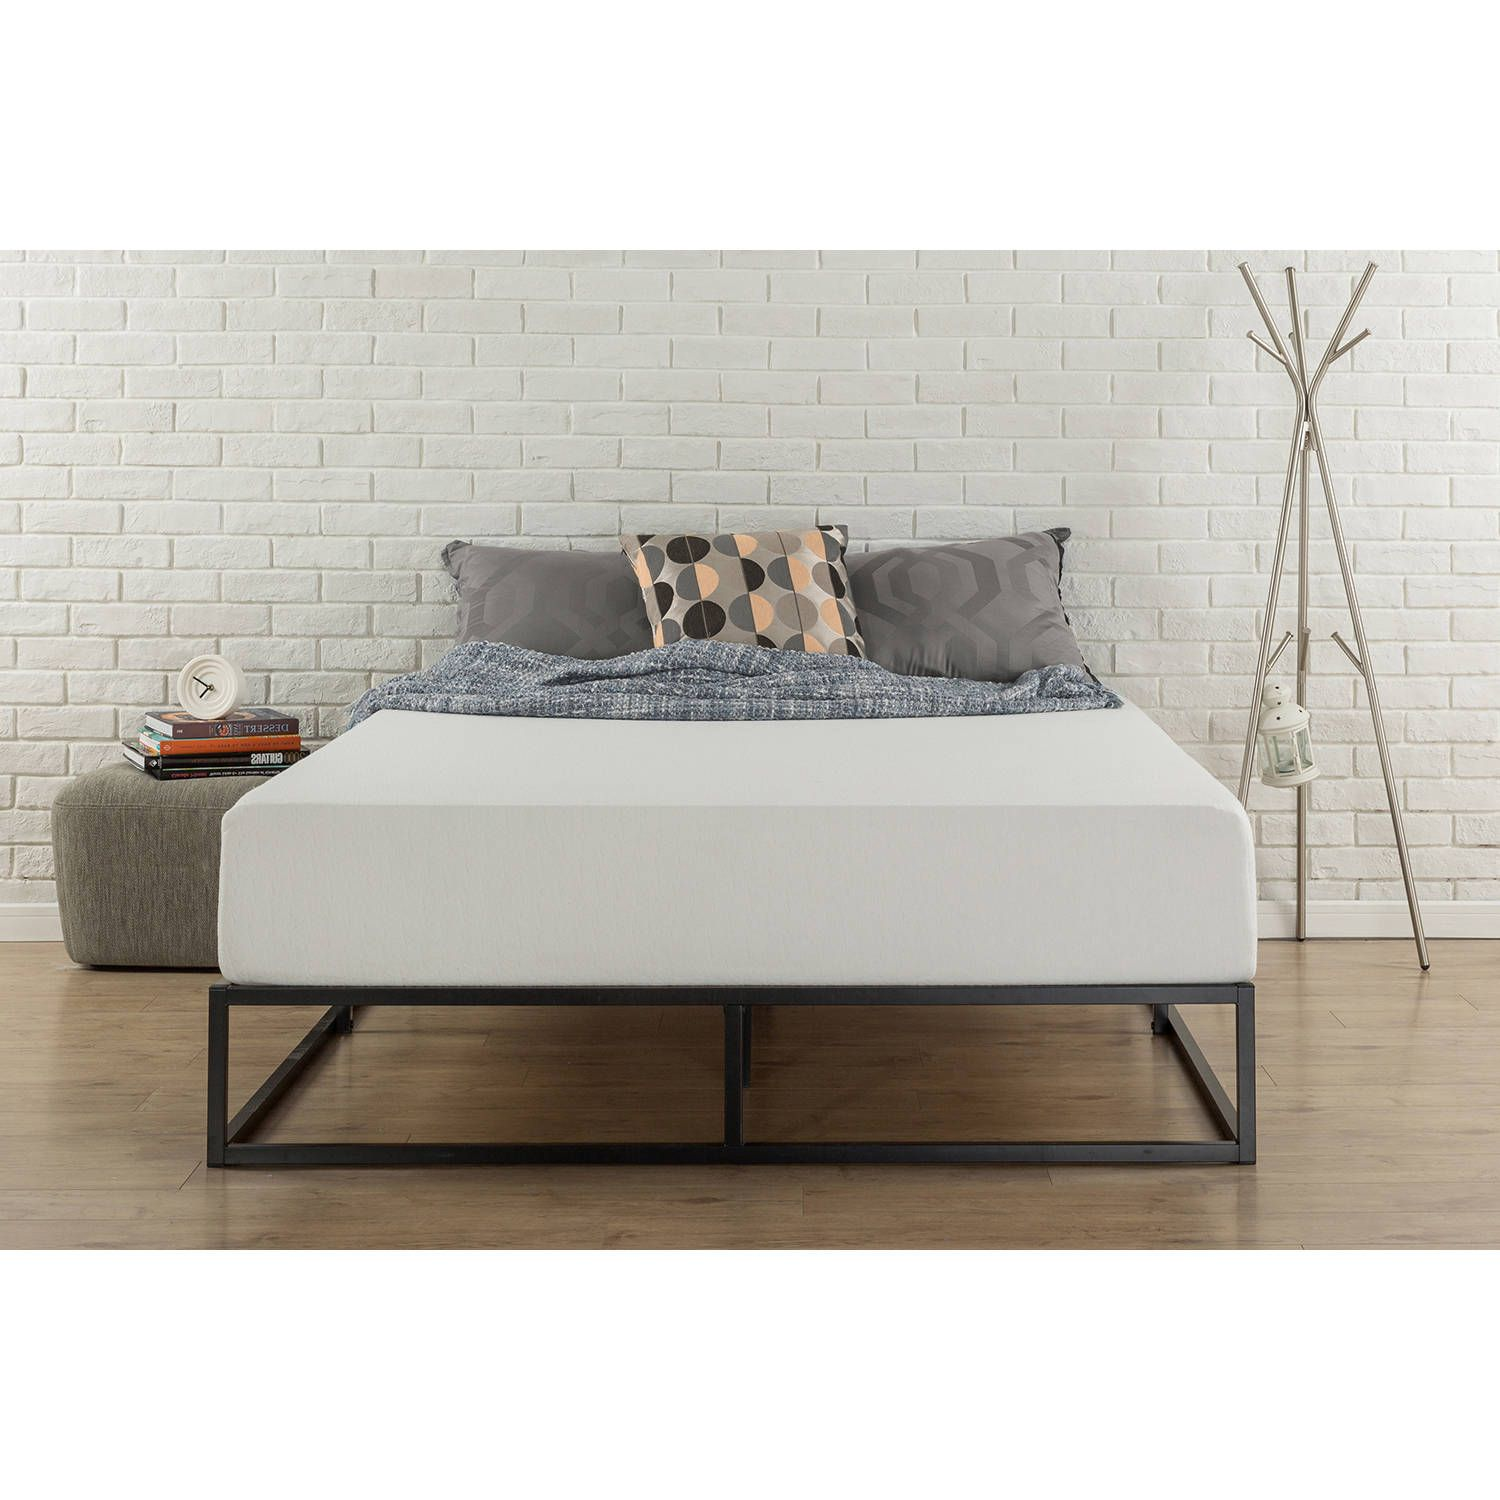 Zinus Joseph Modern Studio 10 Platforma Low Profile Bed Frame Twin Walmart Com Low Profile Bed Frame Bed Frame Zinus